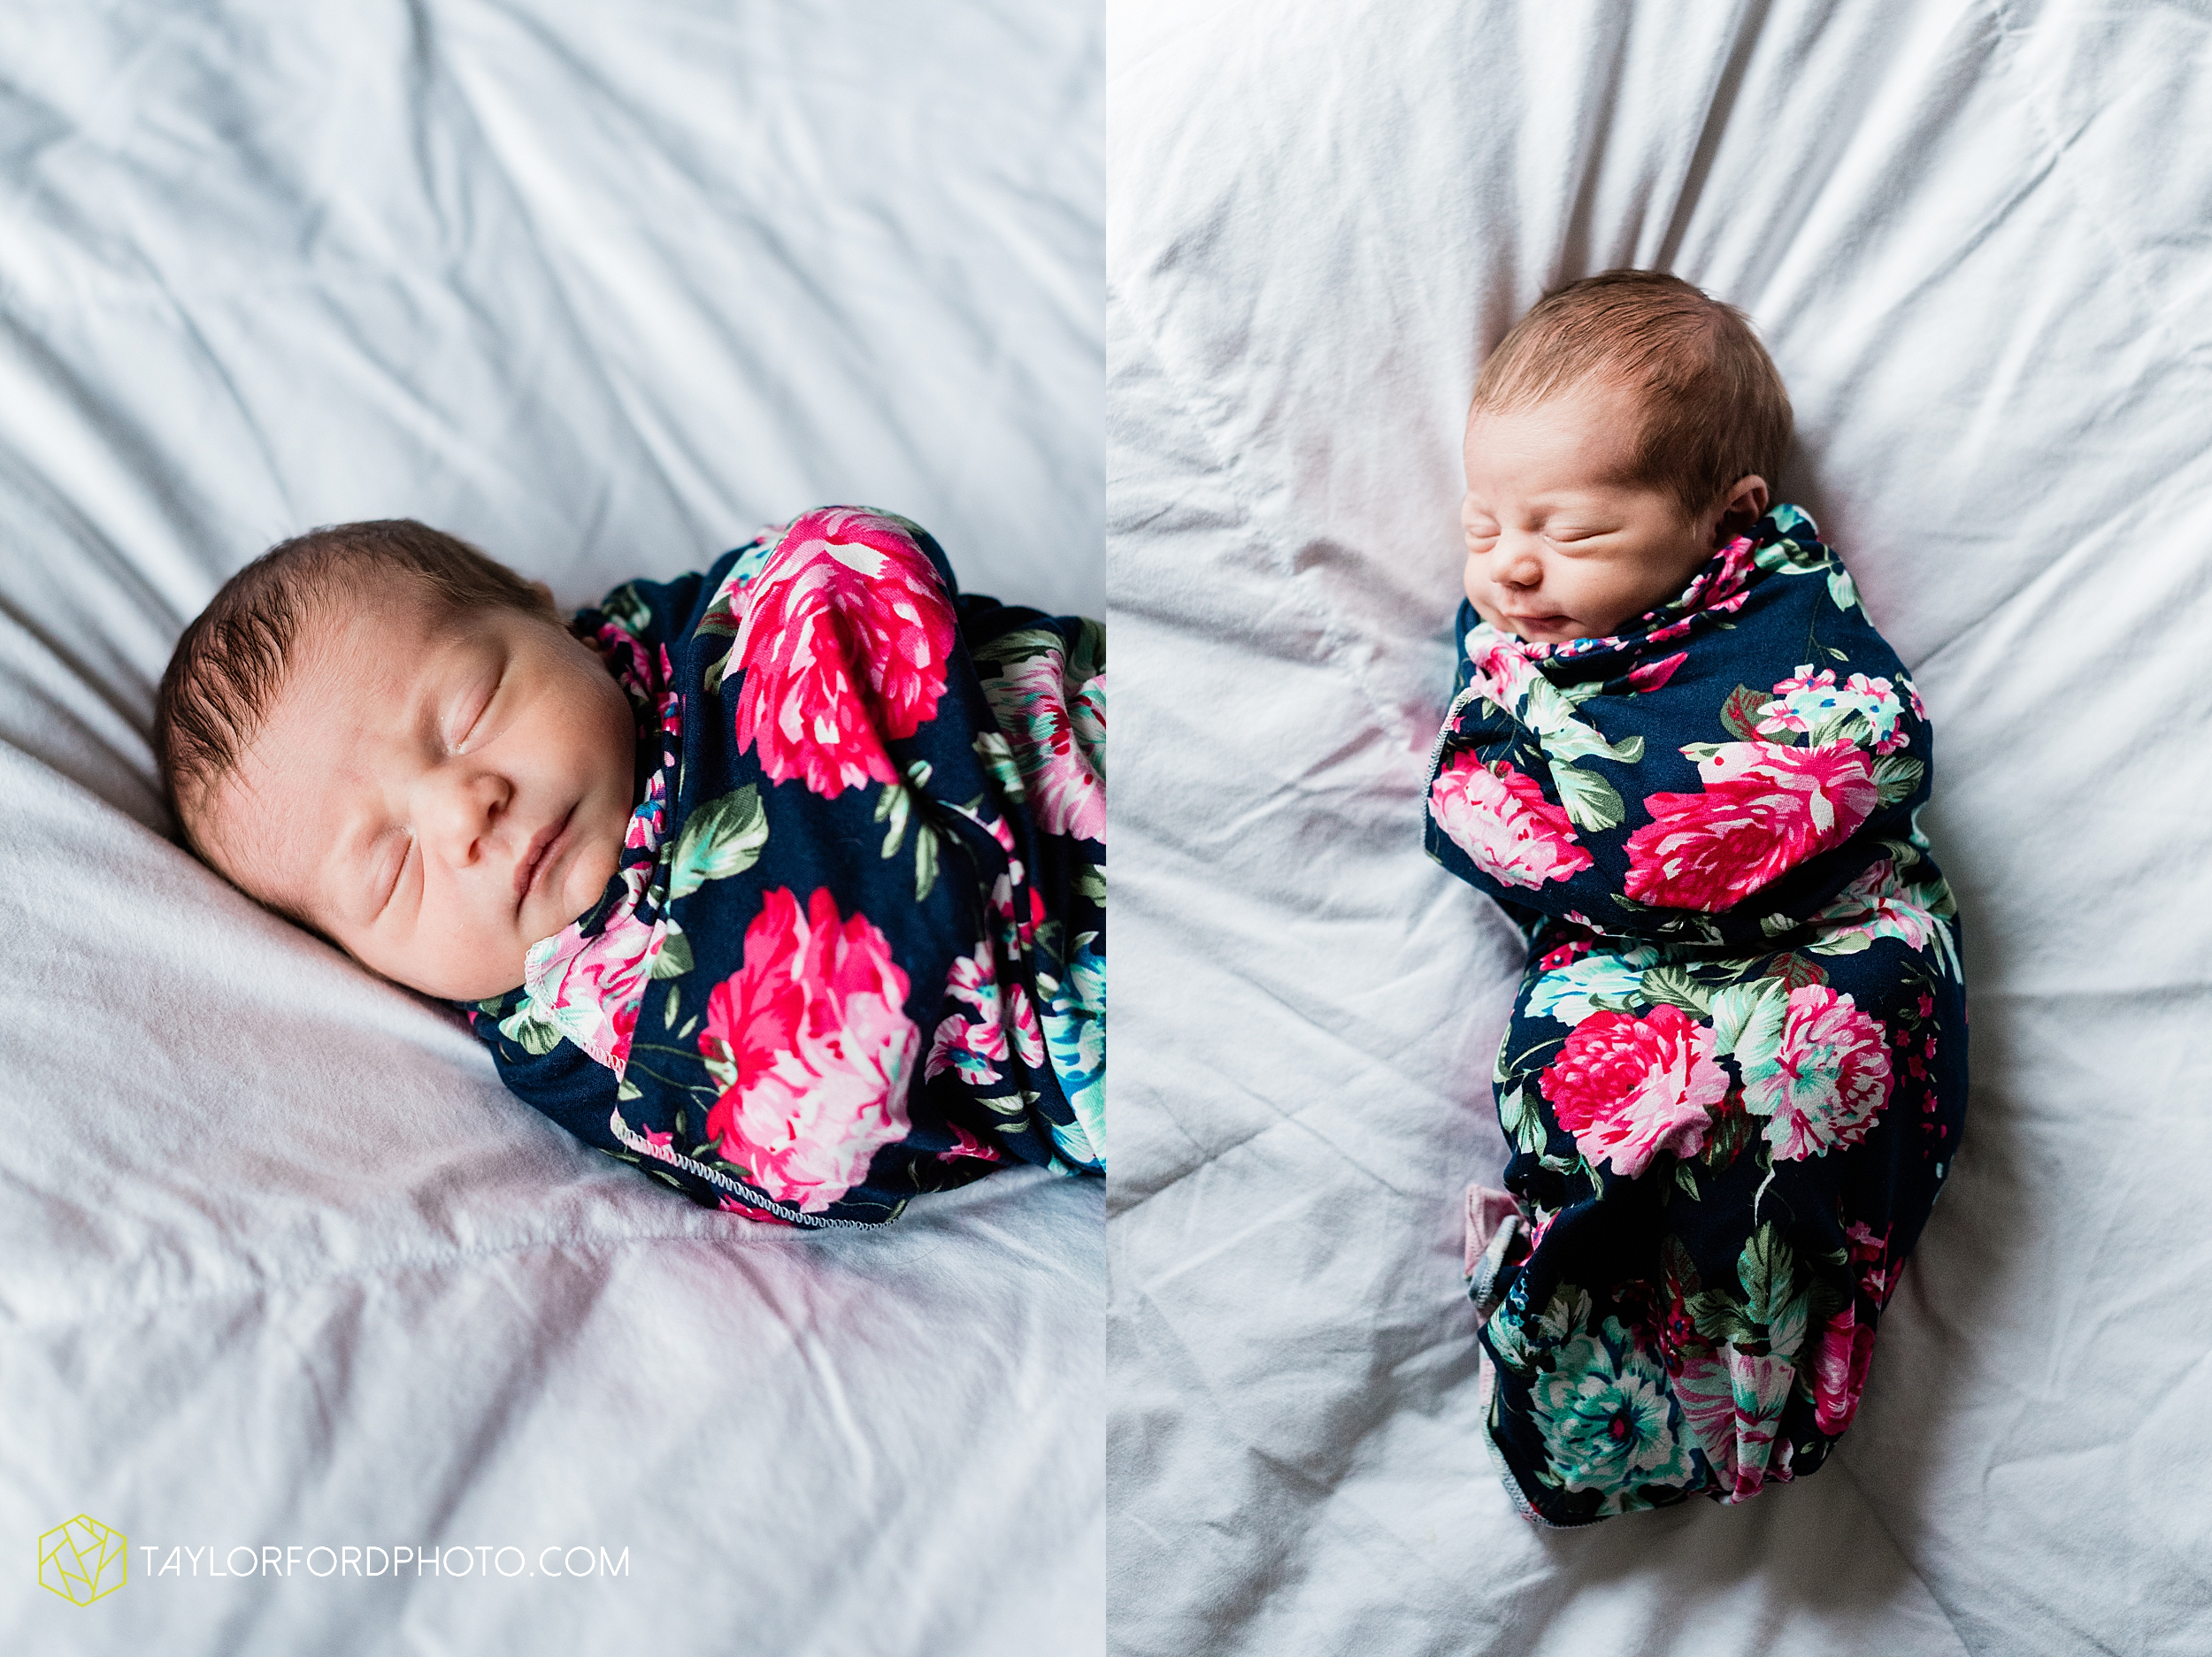 ashley-aaron-noraa-lifestyle-at-home-family-newborn-blacklick-columbus-ohio-photography-taylor-ford-hirschy-photographer_2344.jpg